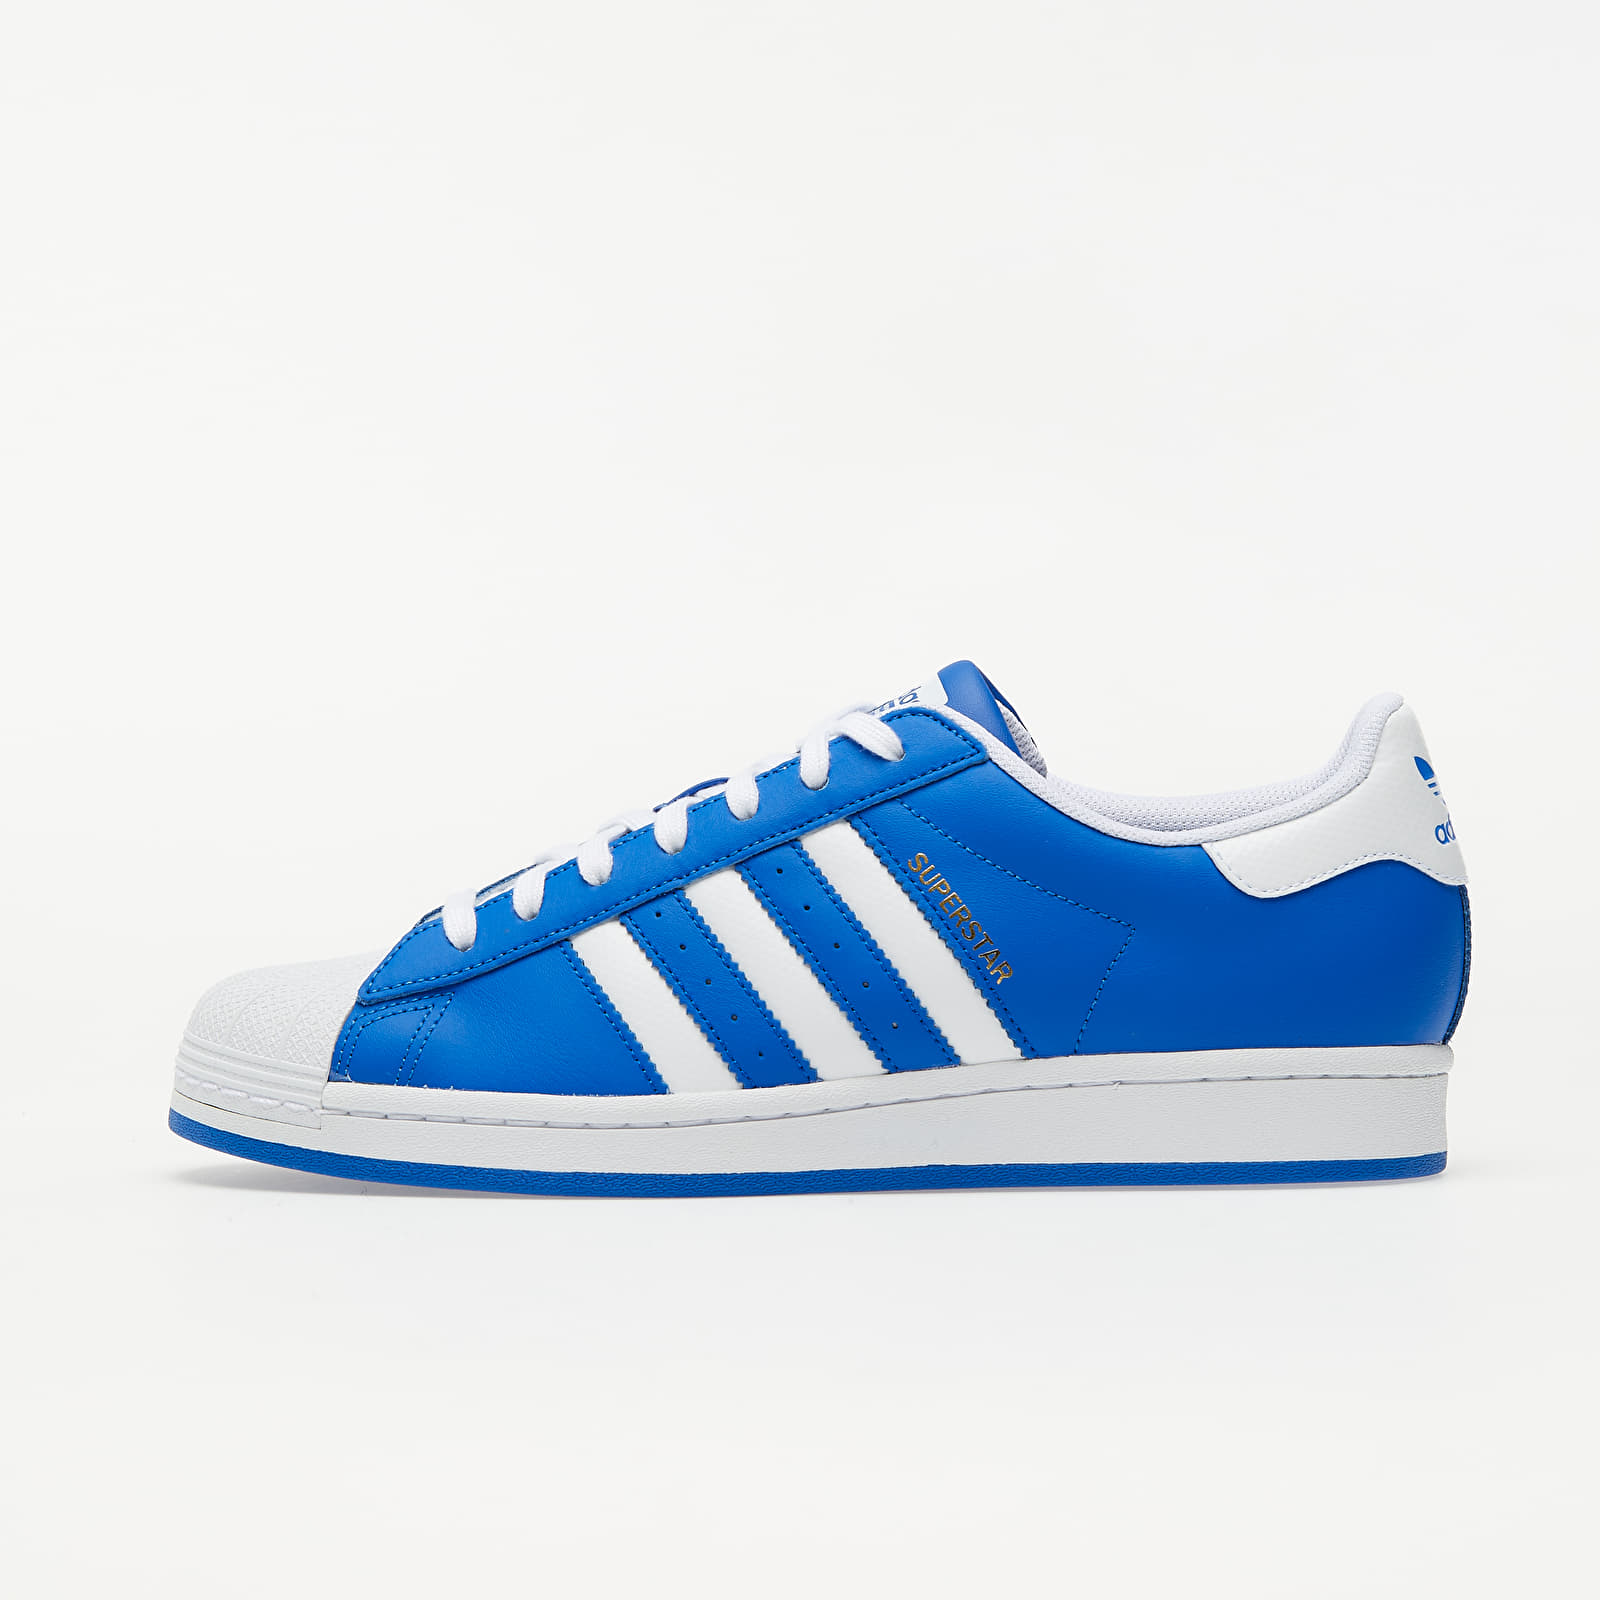 adidas Superstar Blue/ Ftw White/ Gold Metalic EUR 42